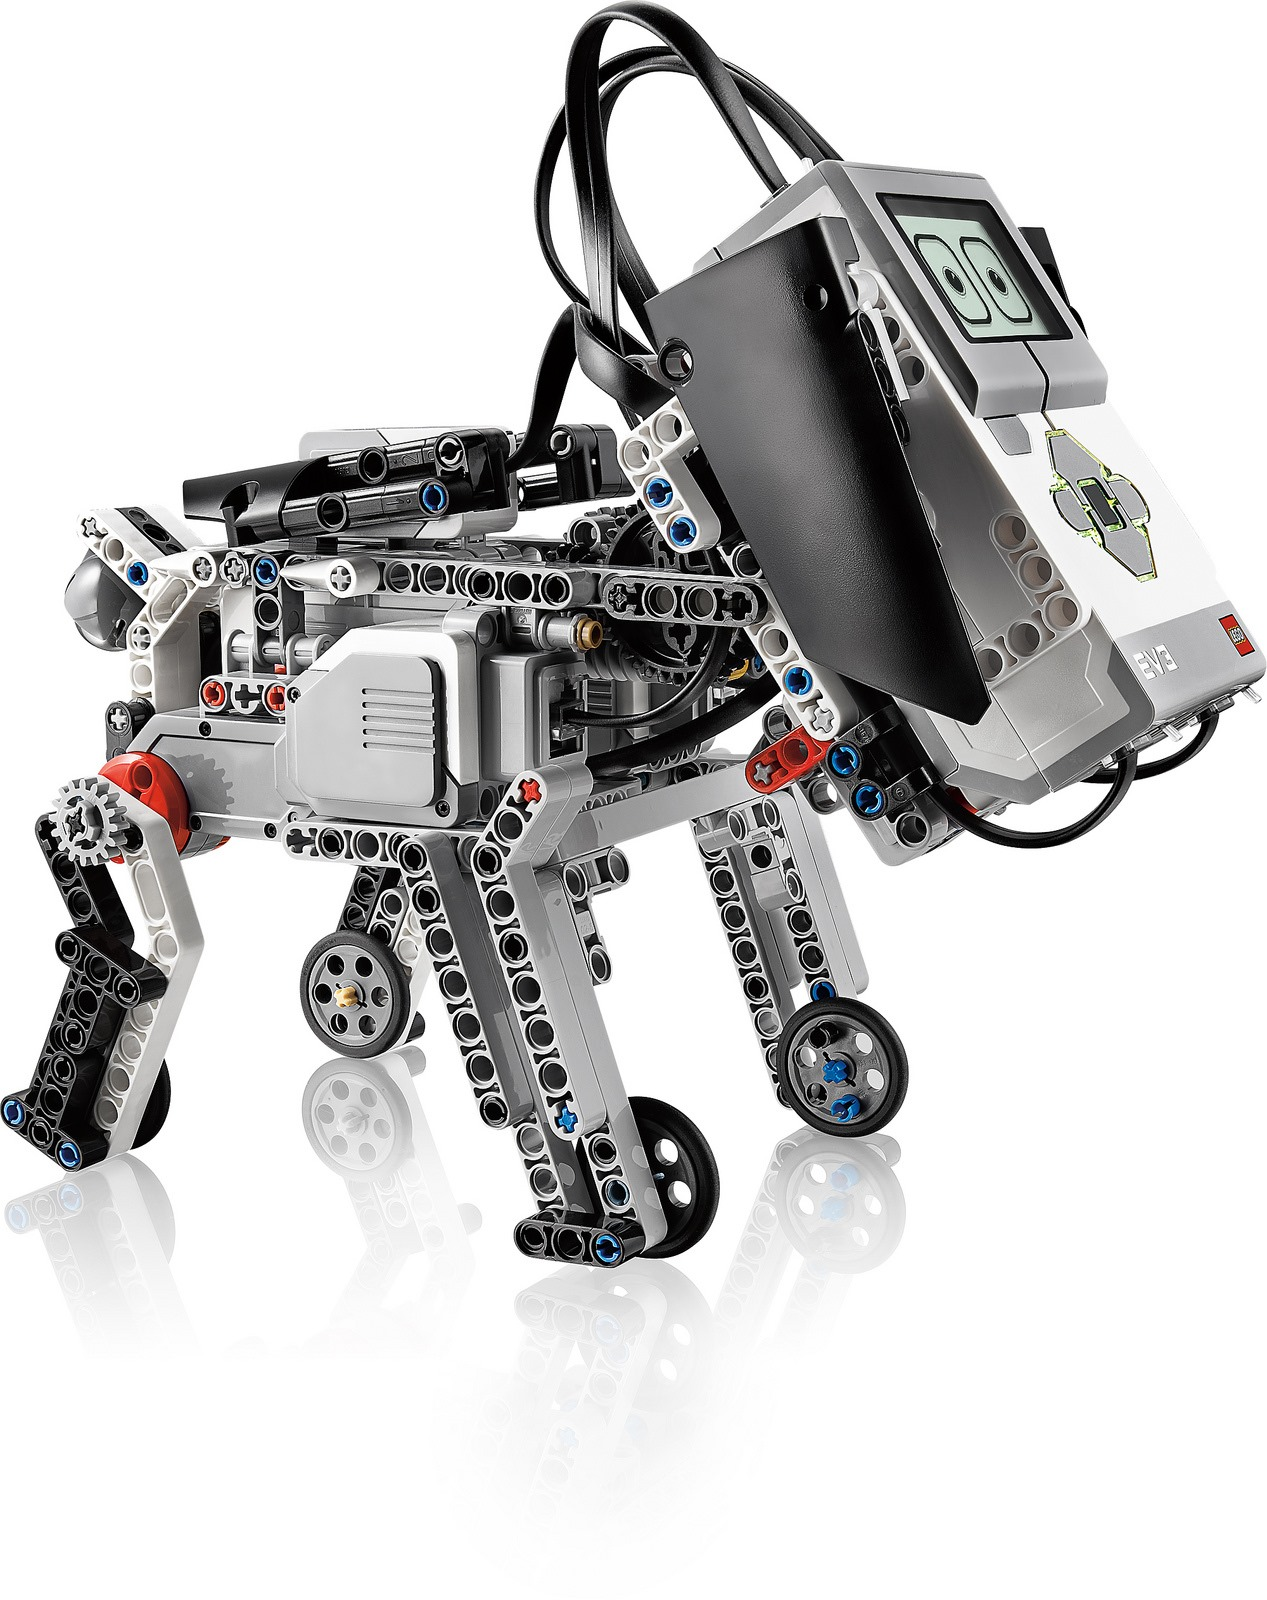 lego mindstorms ev3 windows themes bot bench. Black Bedroom Furniture Sets. Home Design Ideas